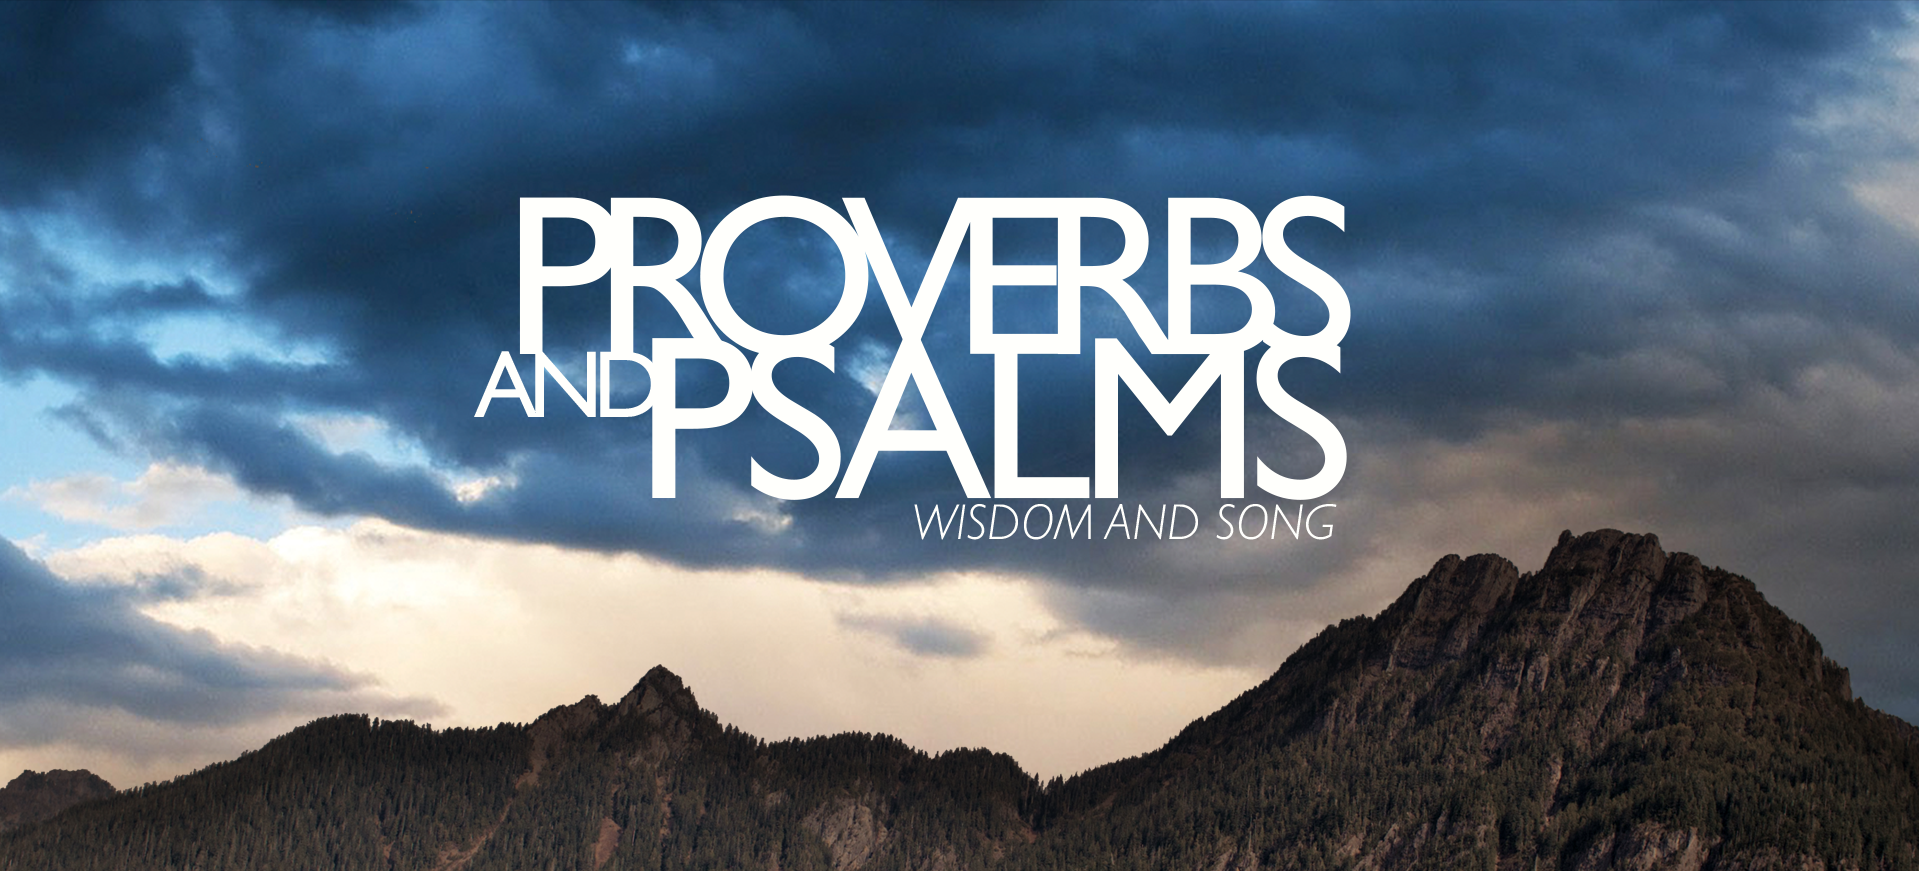 Psalms & Proverbs.png